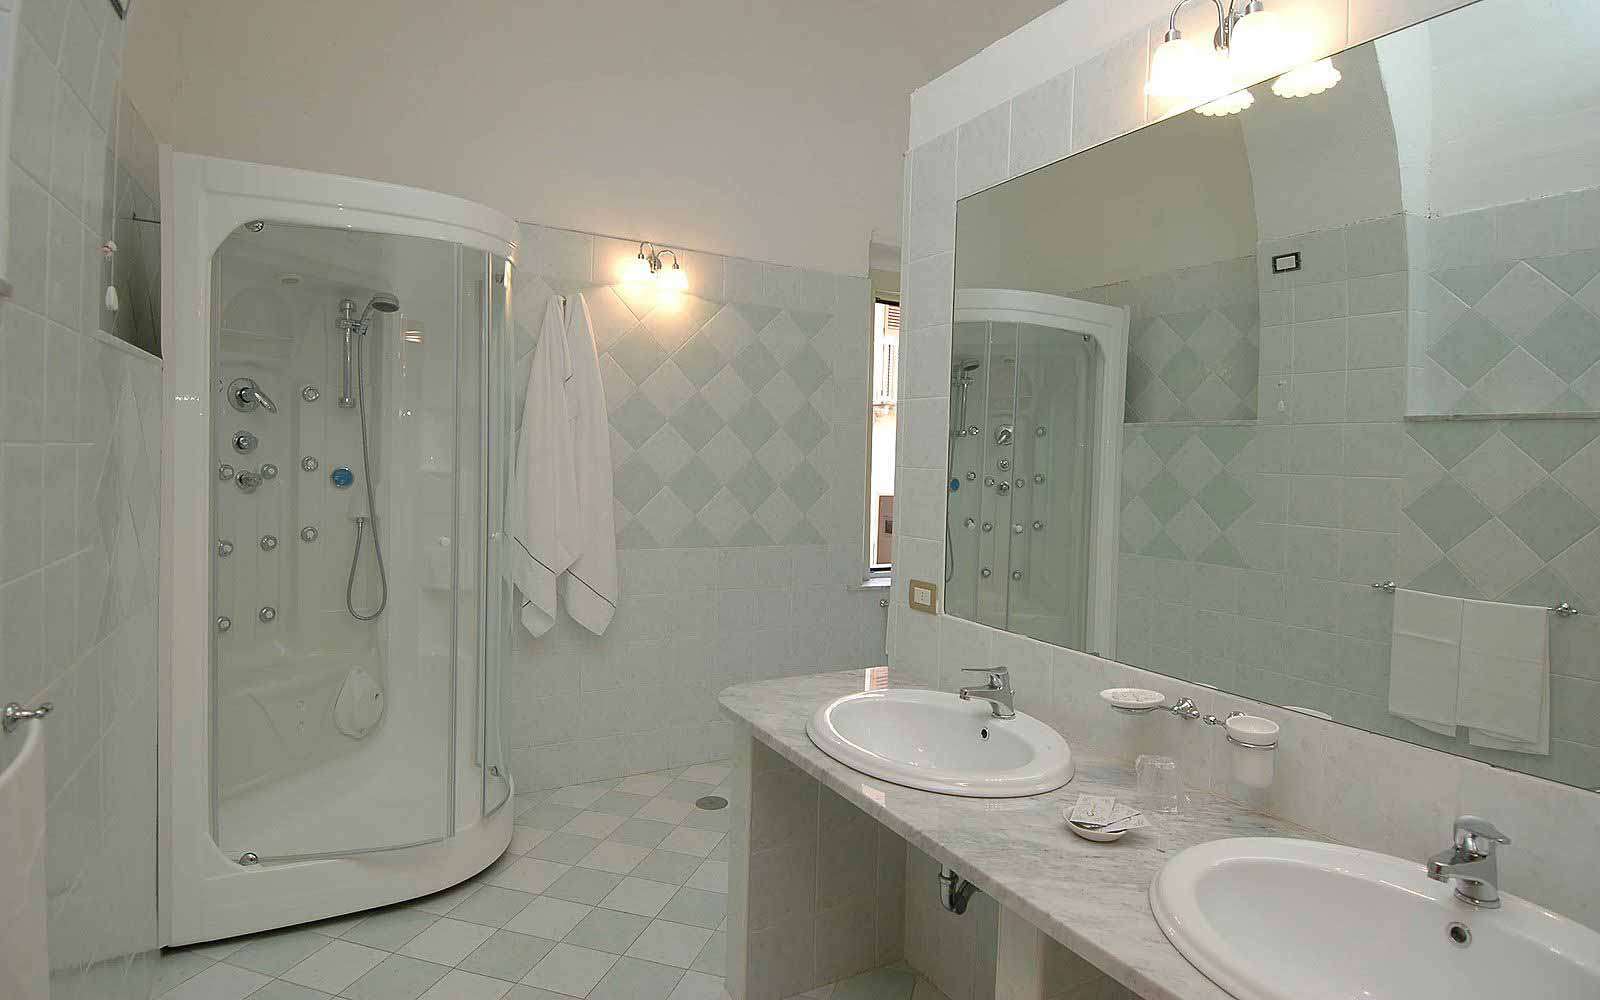 Bathroom in a suite at Hotel Fontana